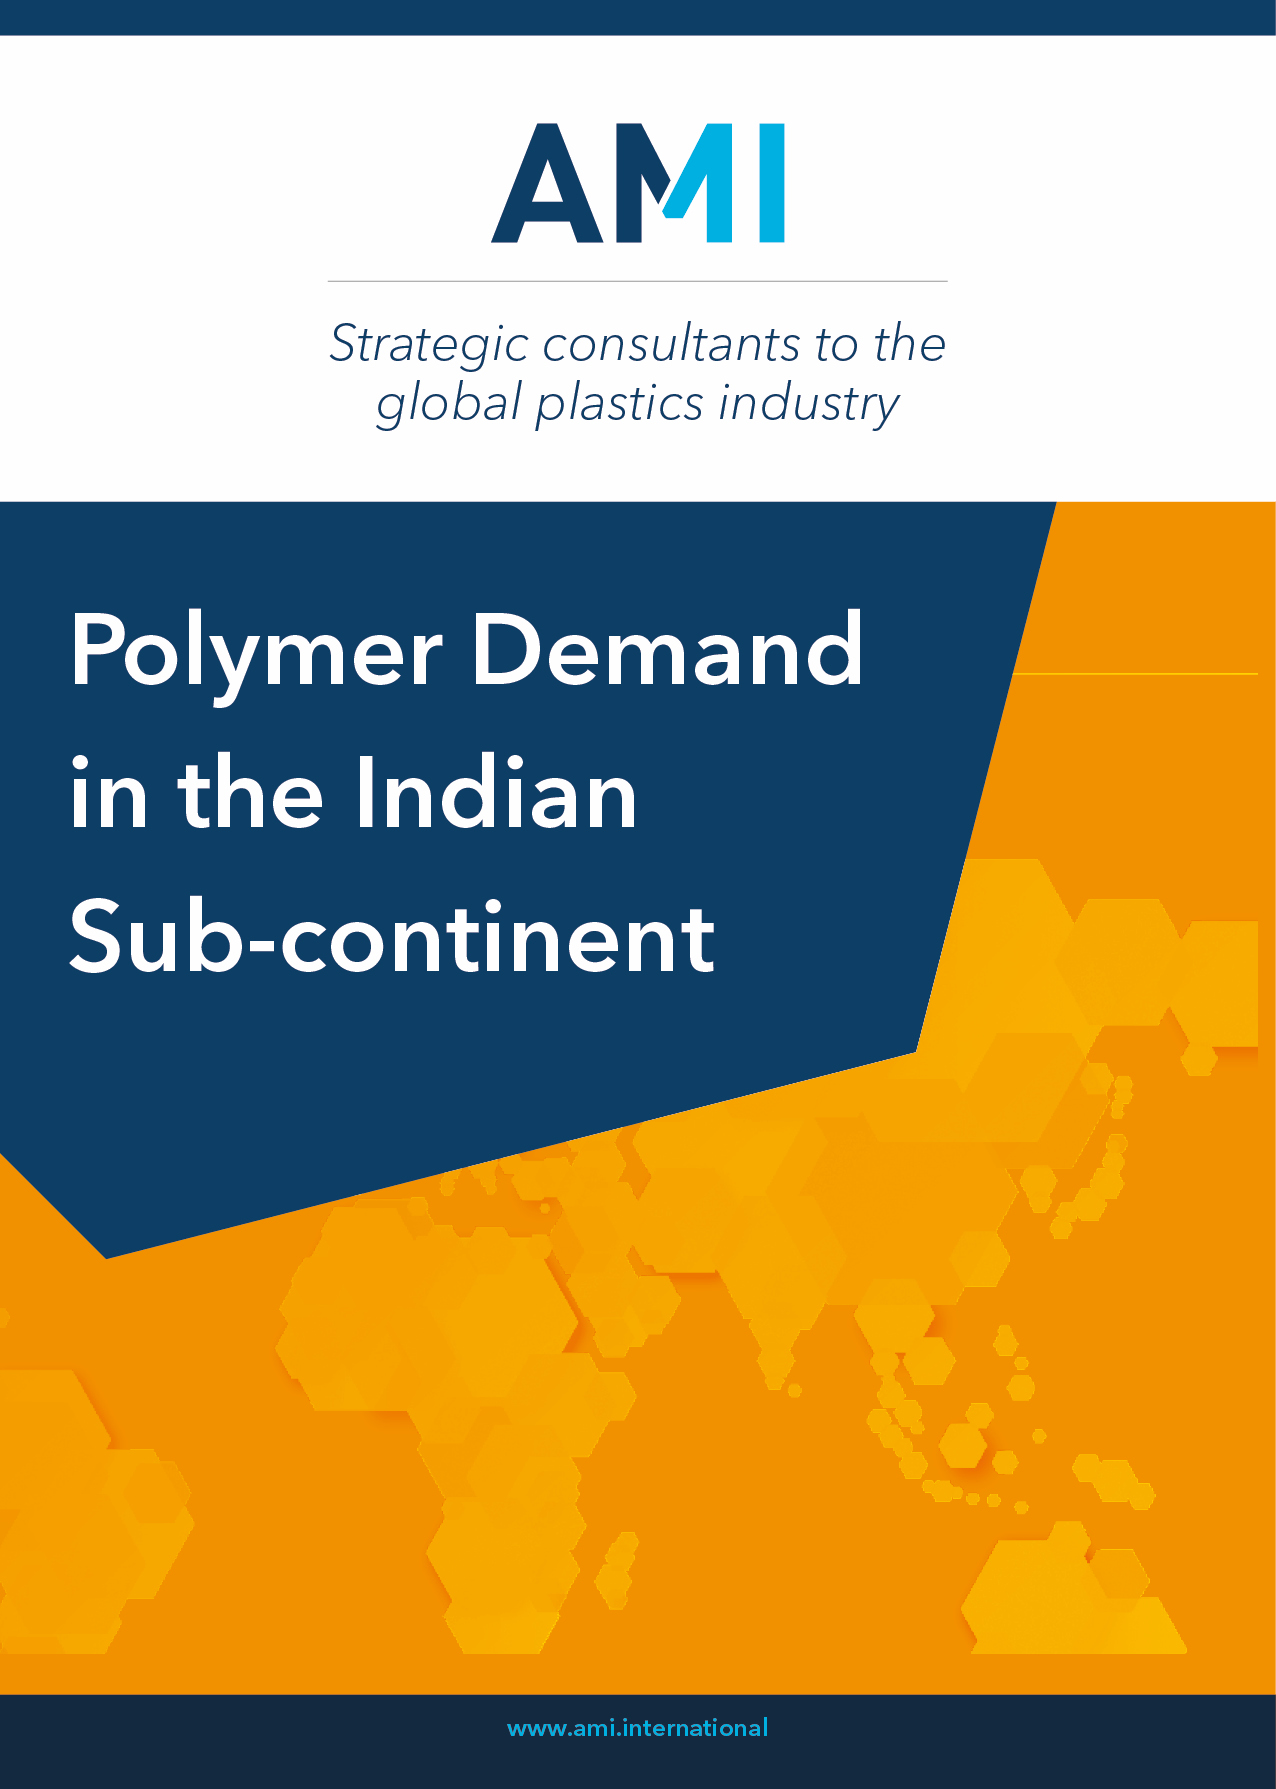 Polymer Demand in the Indian sub-continent 2019